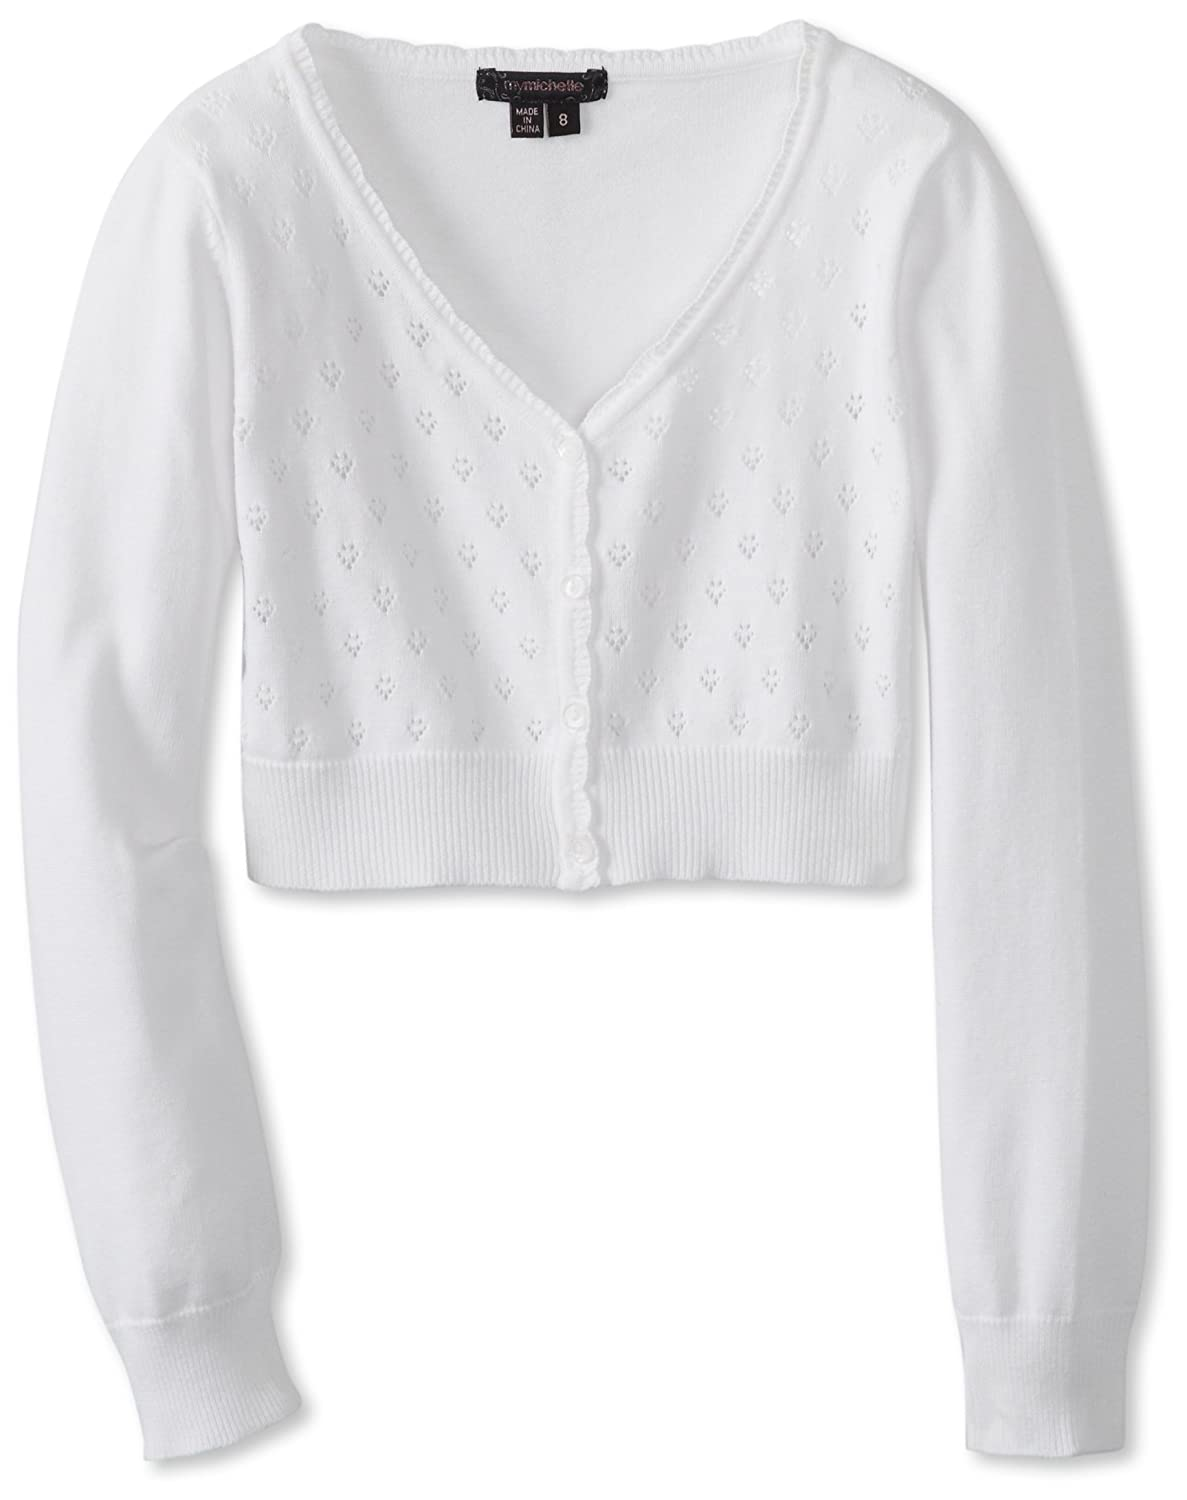 Find a great selection of women's sweaters, shrugs and cardigans at Dillards. Offered in the latest styles and materials from shrugs, cardigans, v-neck sweaters and boleros Dillards has you covered.